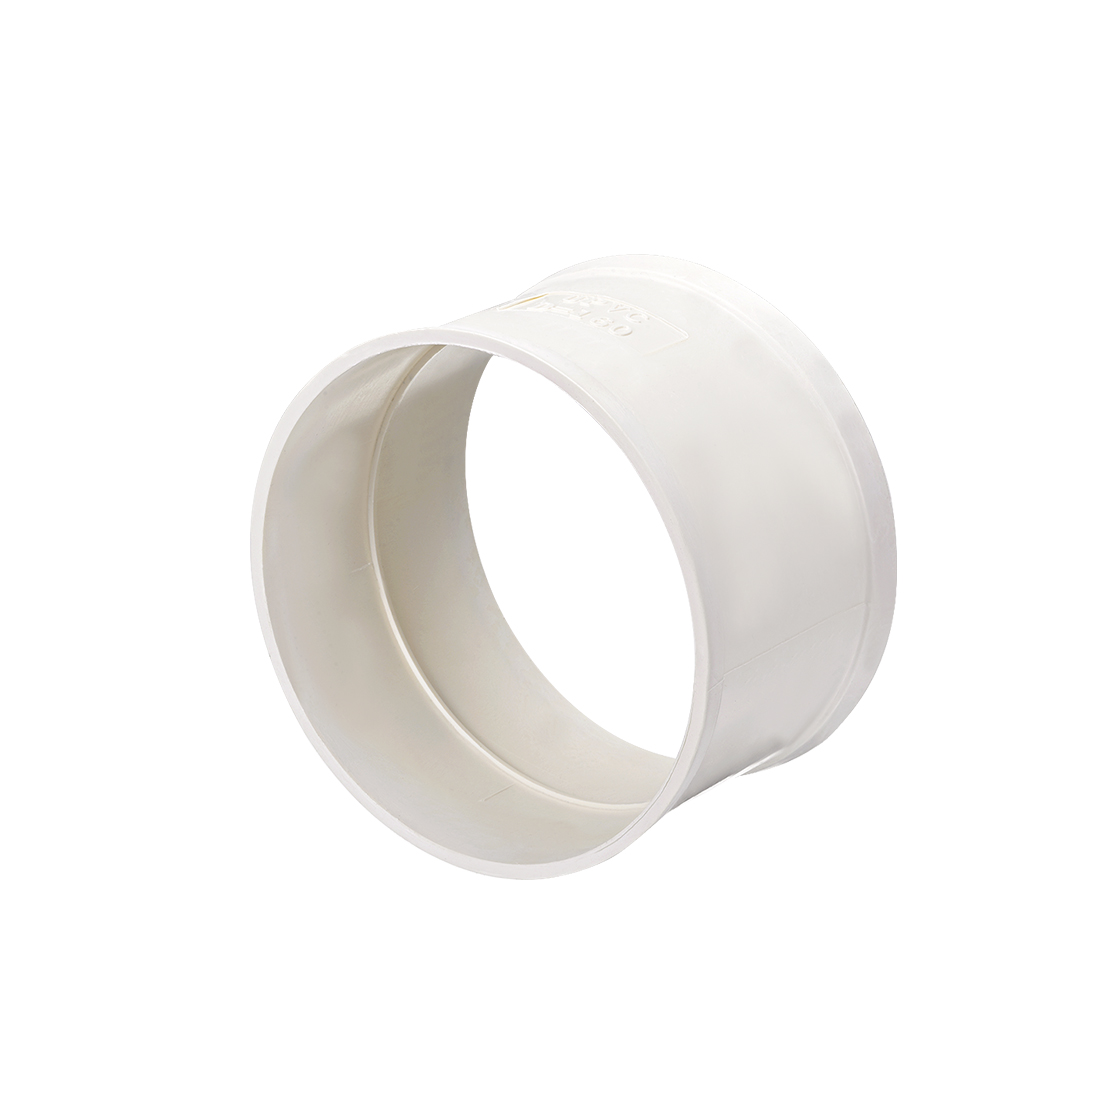 PVC Pipe Fitting Coupling Schedule 40 White 6-inch Socket